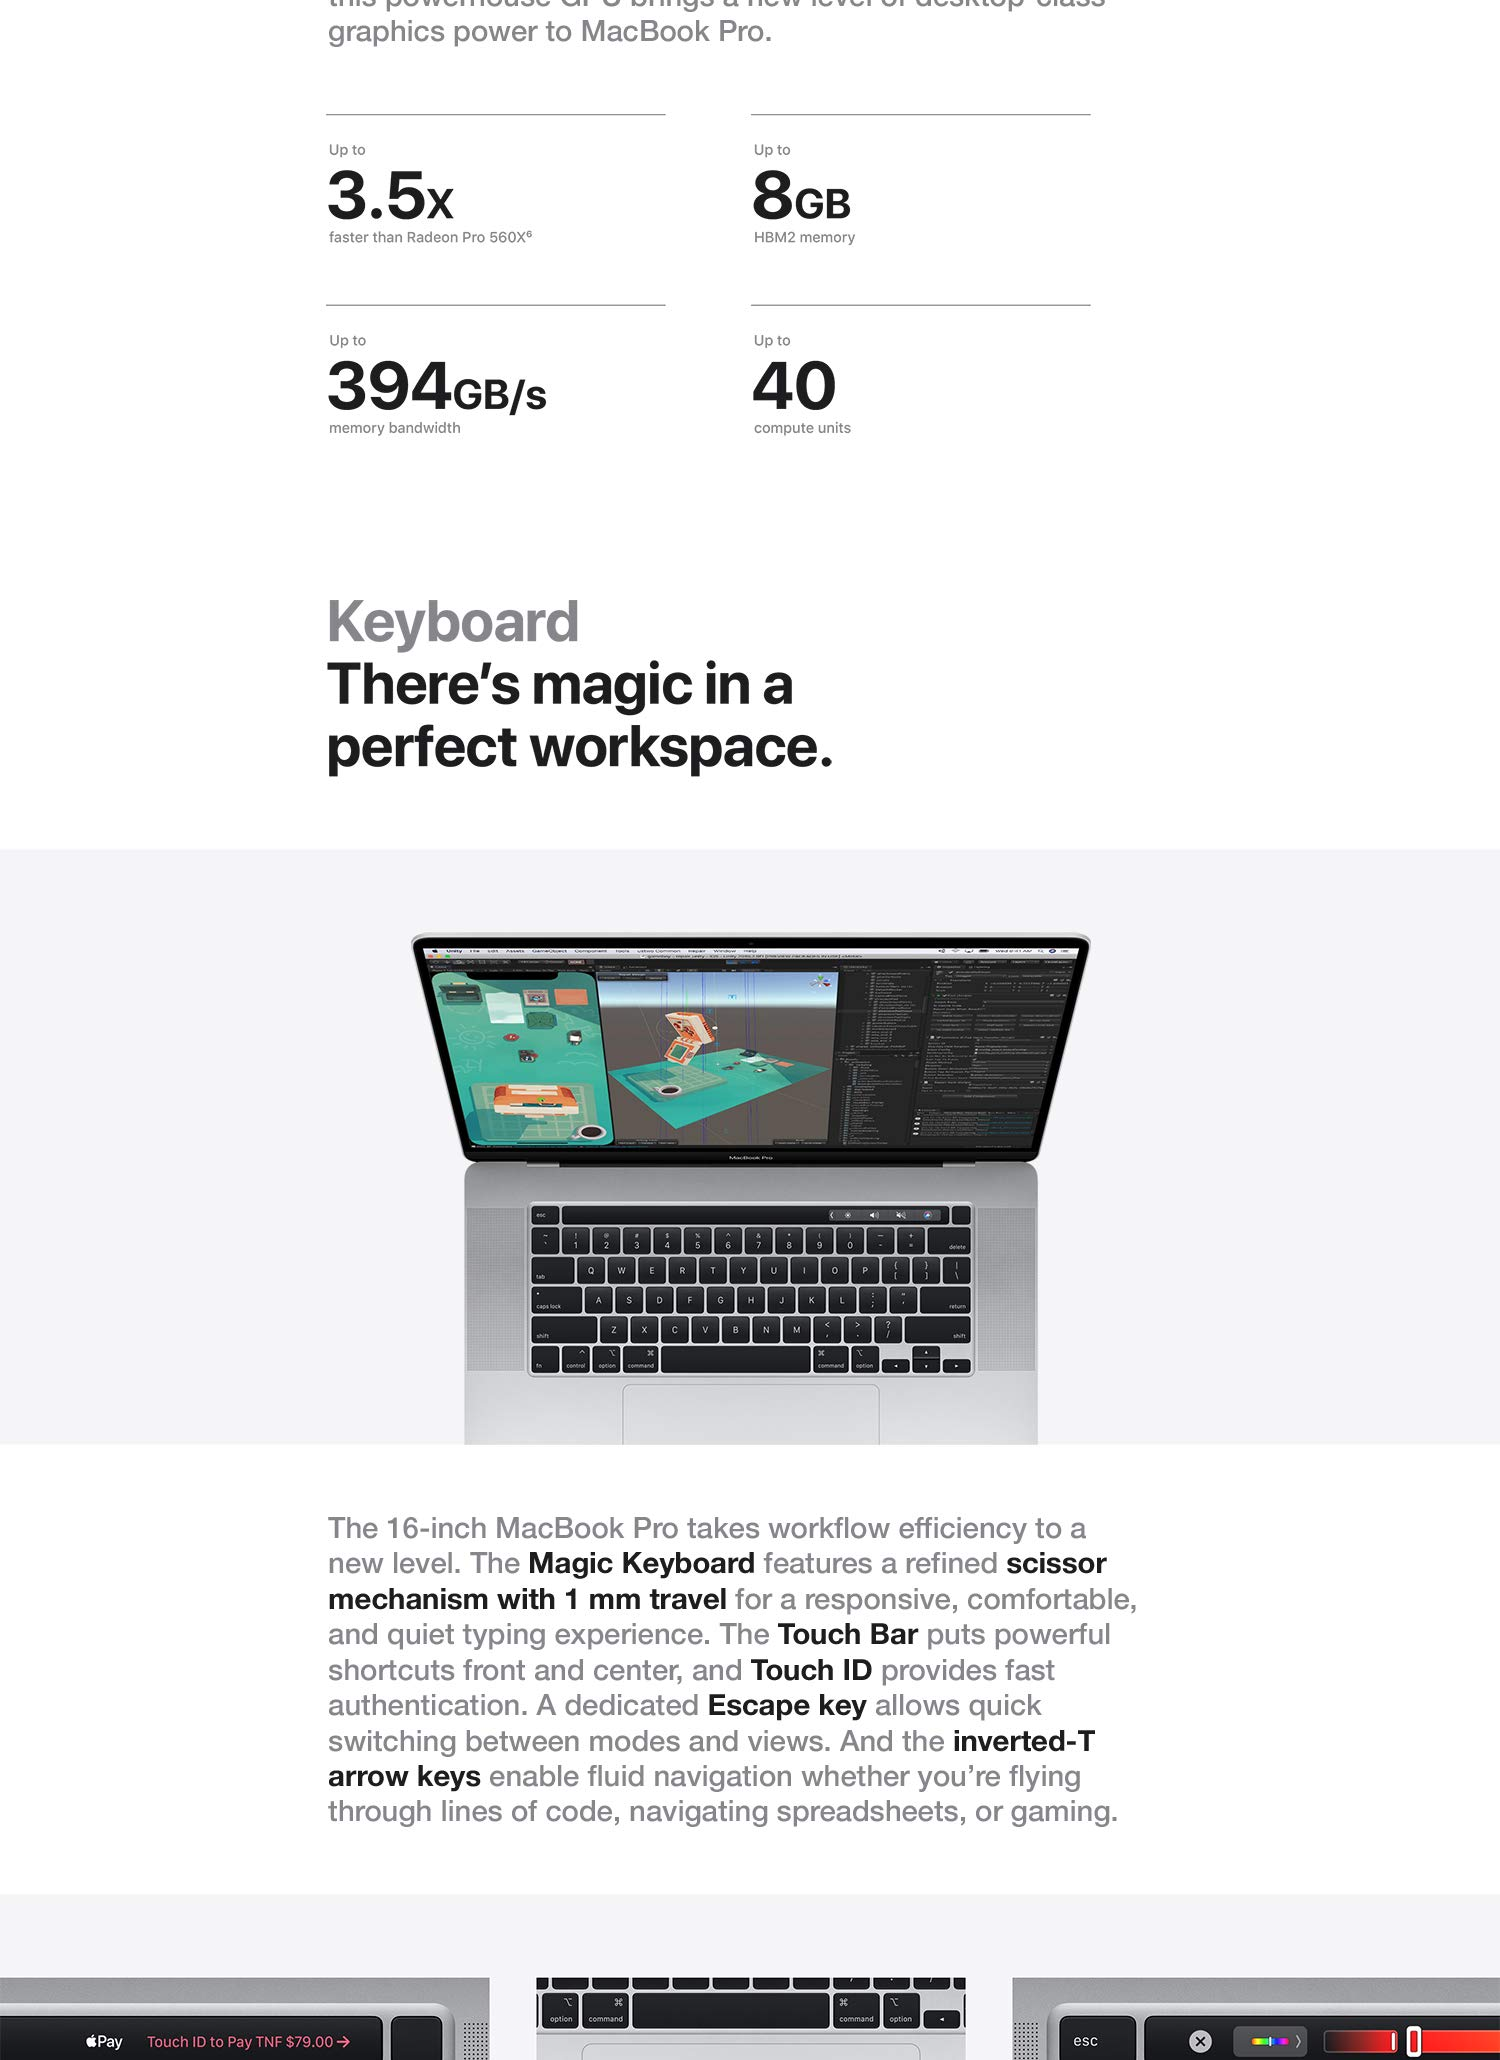 The Magic Keyboard features a refined scissor mechanism for a responsive, comfortable, and quiet typing experience.